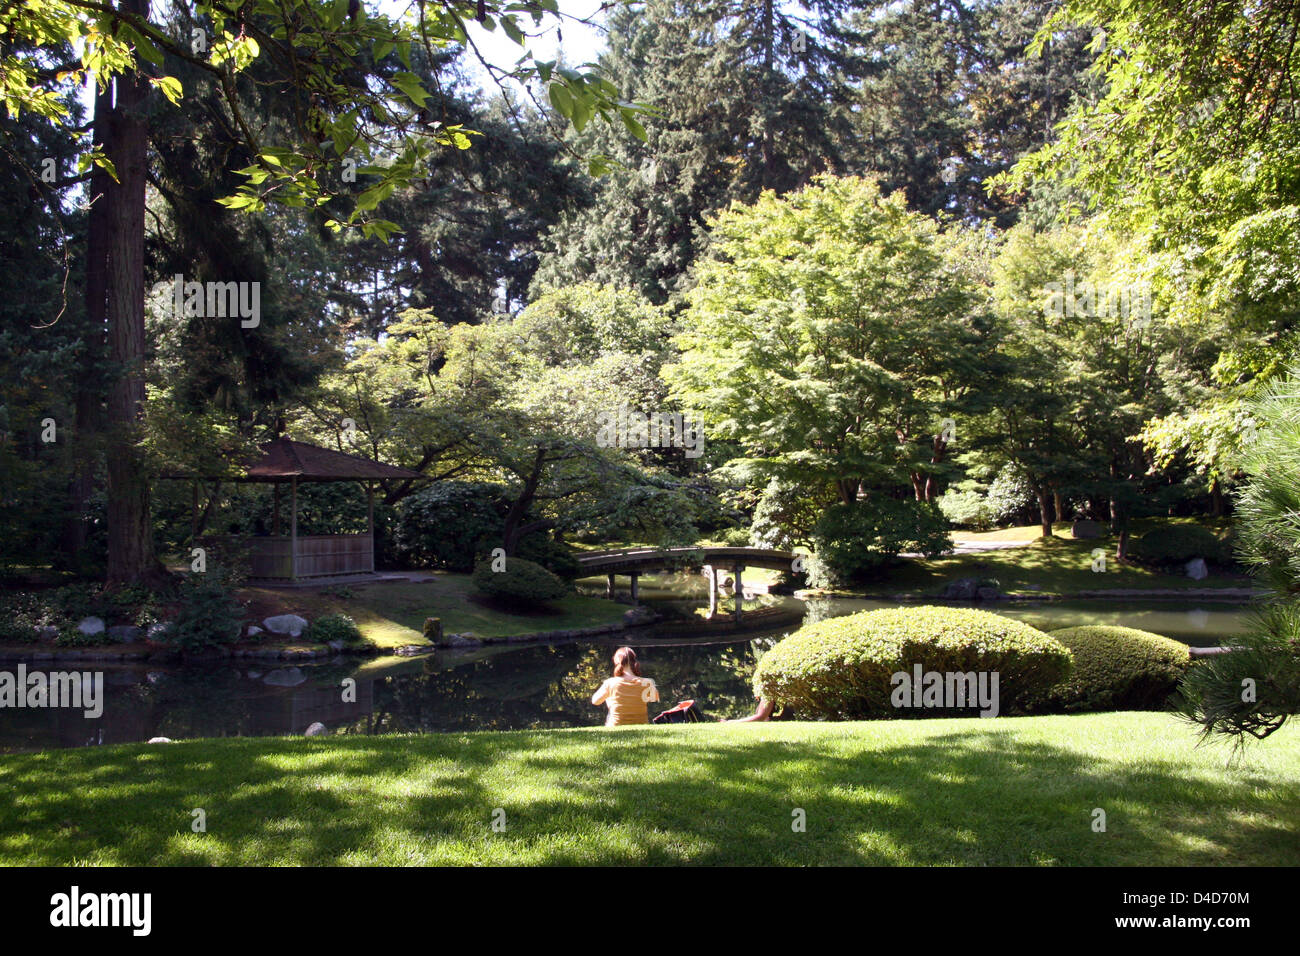 The picture shows the Nitobe Memorial Garden, a Japanese garden on the premises of the